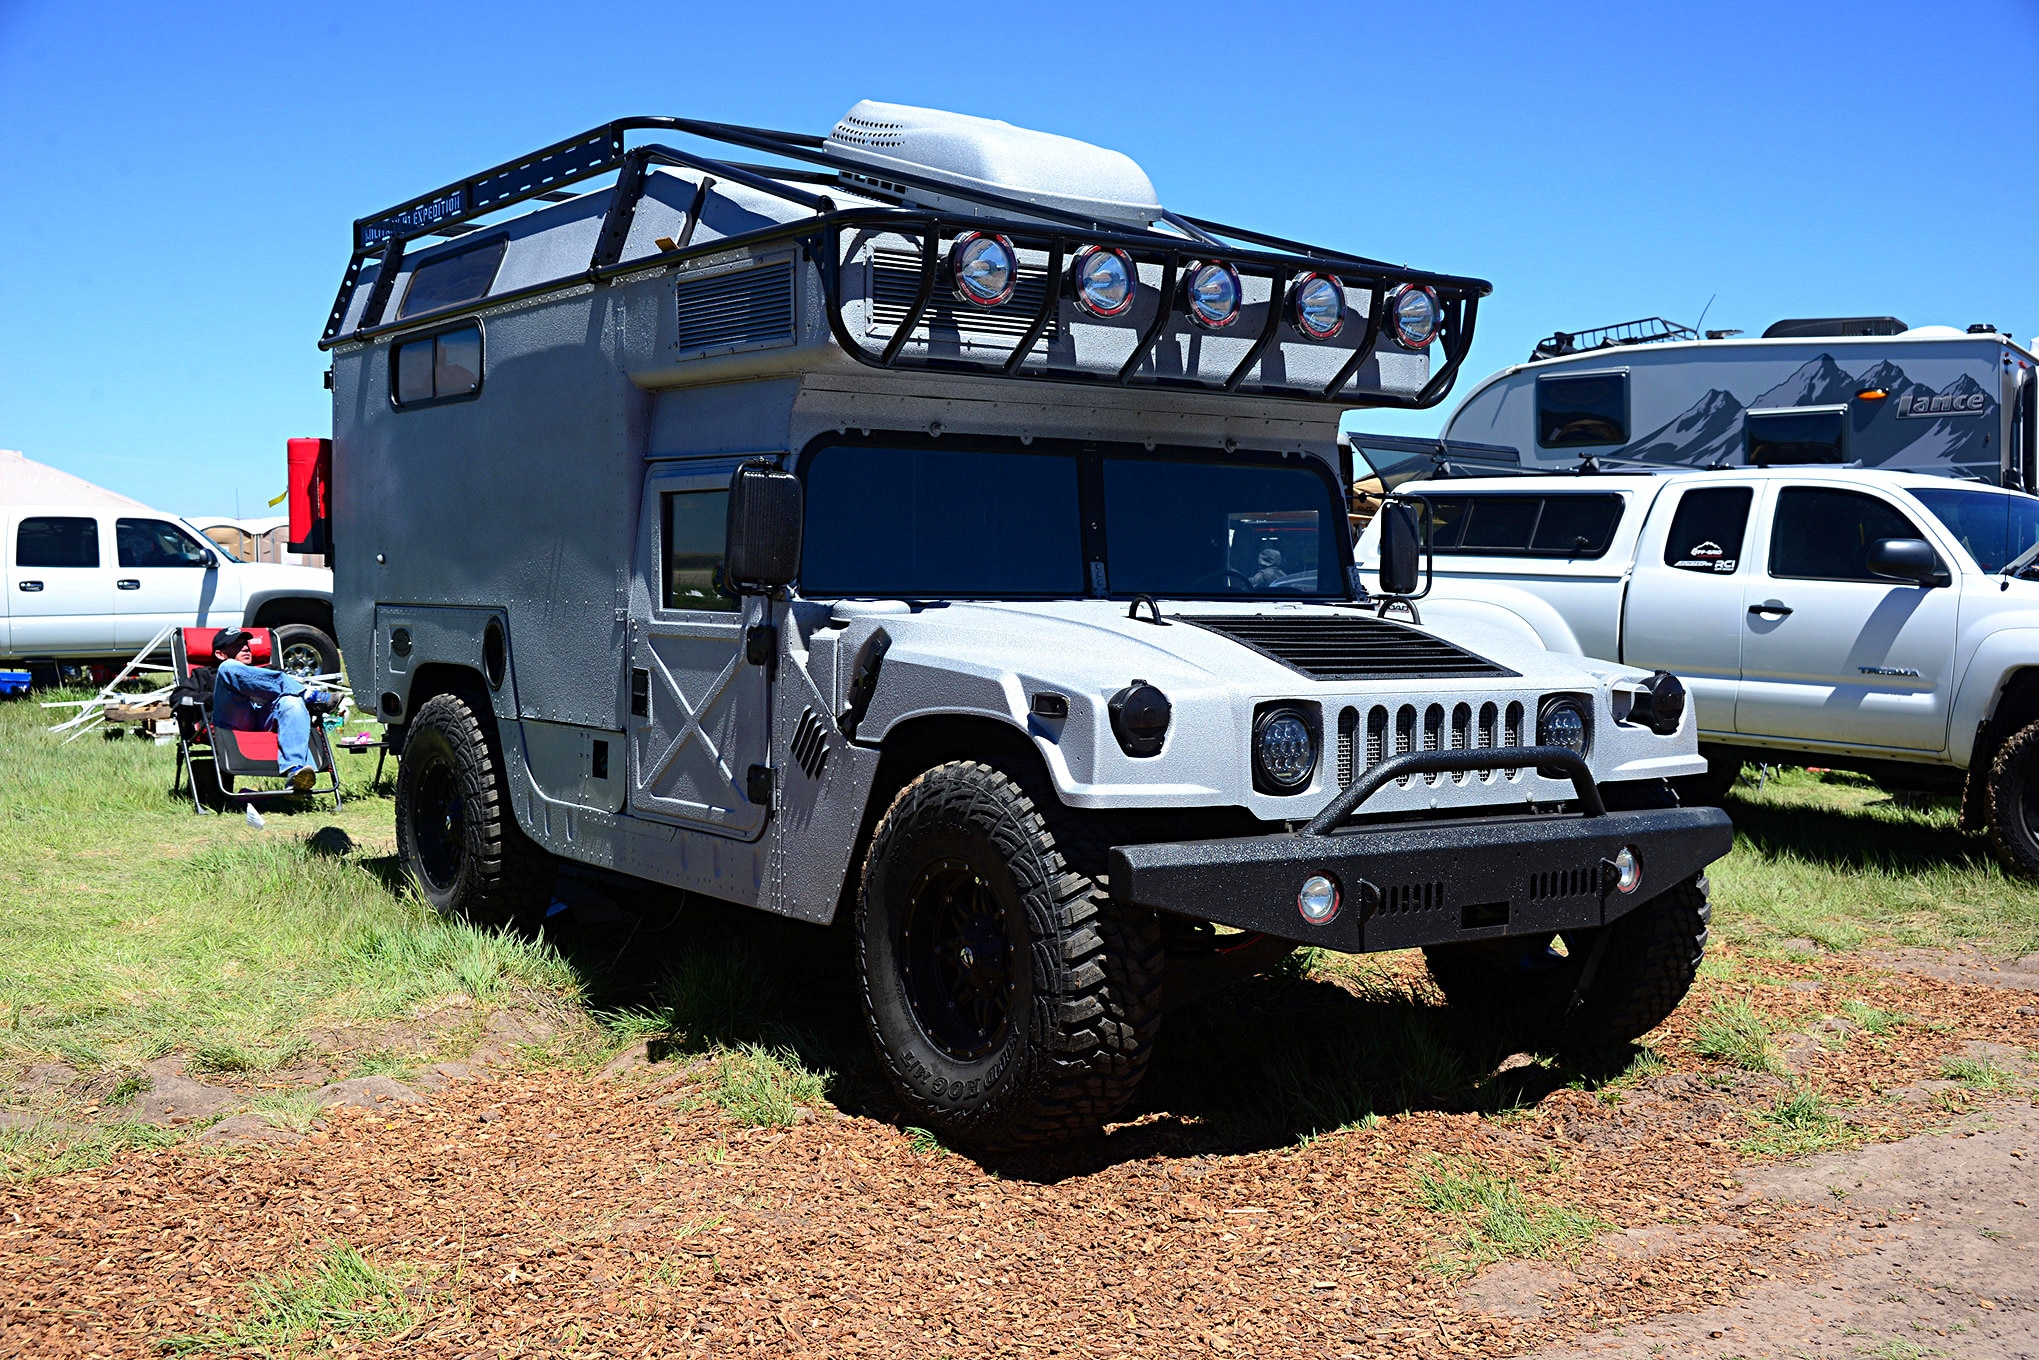 018 2016 Overland Expo 4x4 Vehicles Camping Flagstaff Mormon Lake Arizona Hmmwv Hummer Military H1 Camper Photo 107157358